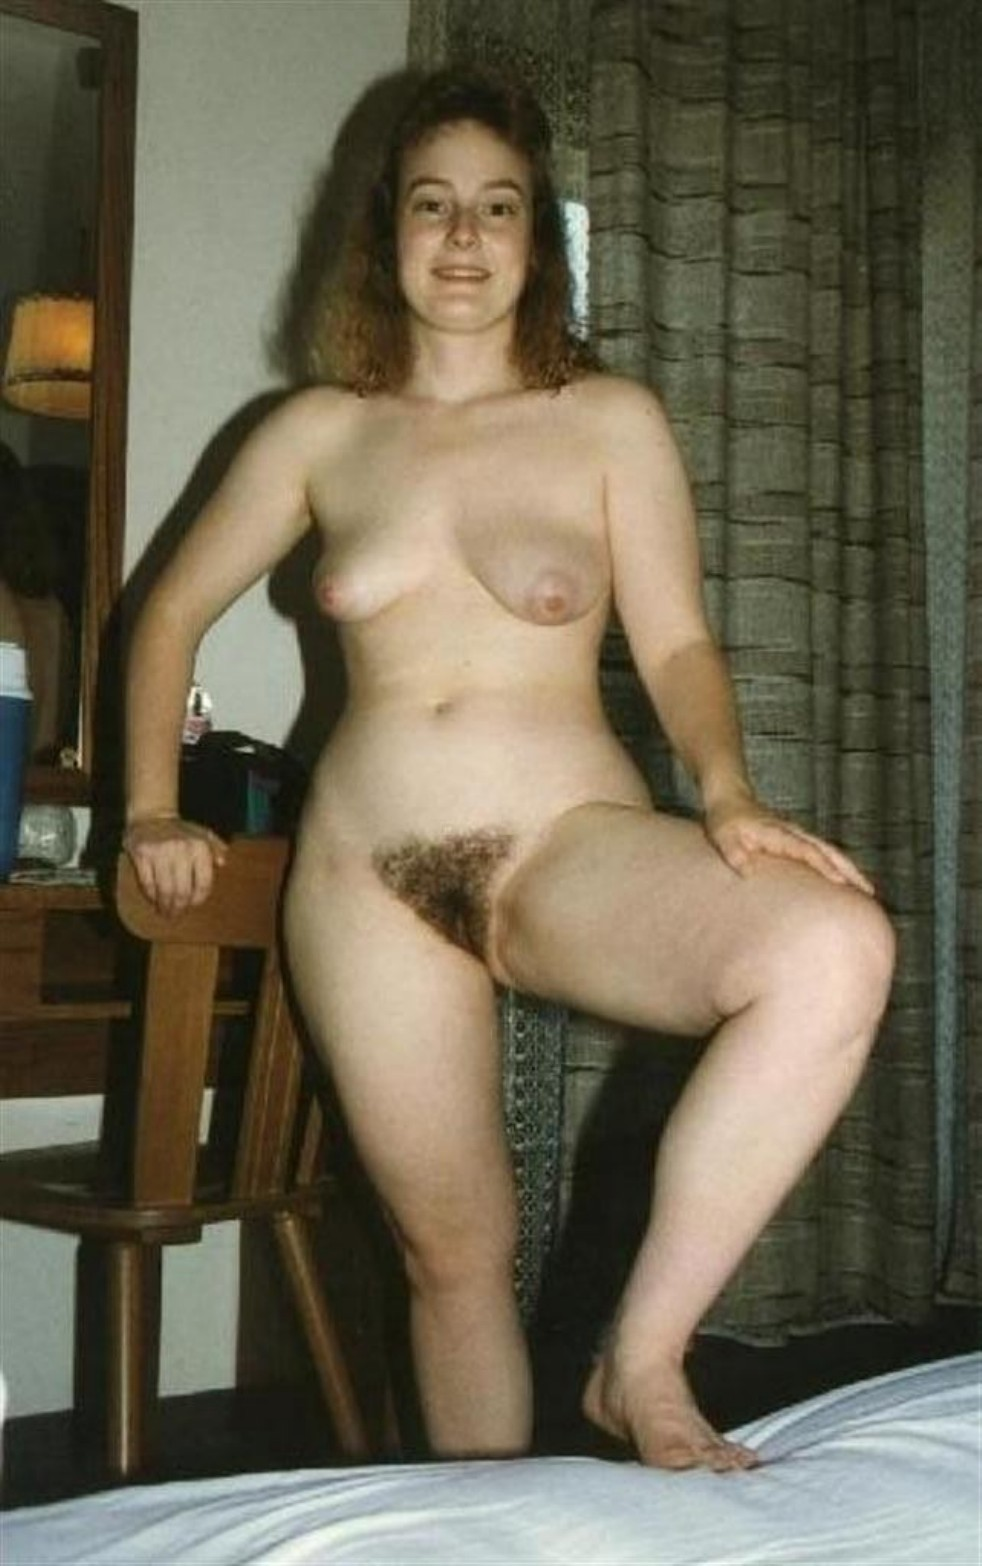 Bottomless hairy pussy flash